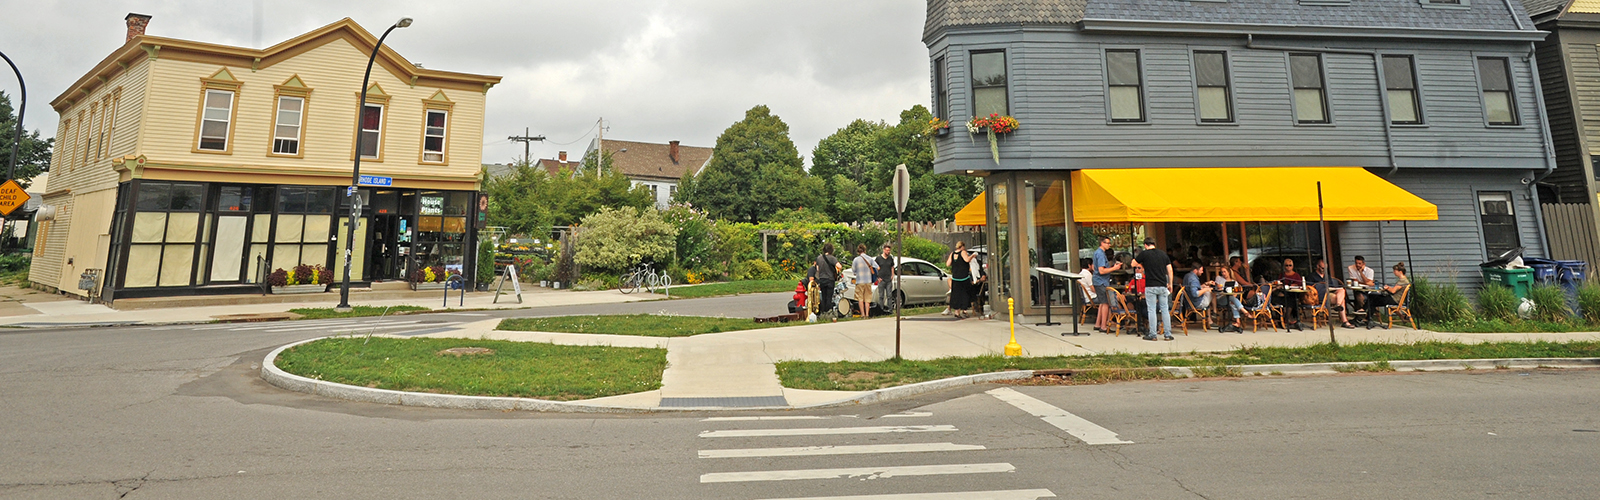 The Five Points neighborhood, a commercial district on Buffalo's West side, has become an attractive location for entrepreneurs. <span class='image-credits'>Dan Cappellazzo</span>